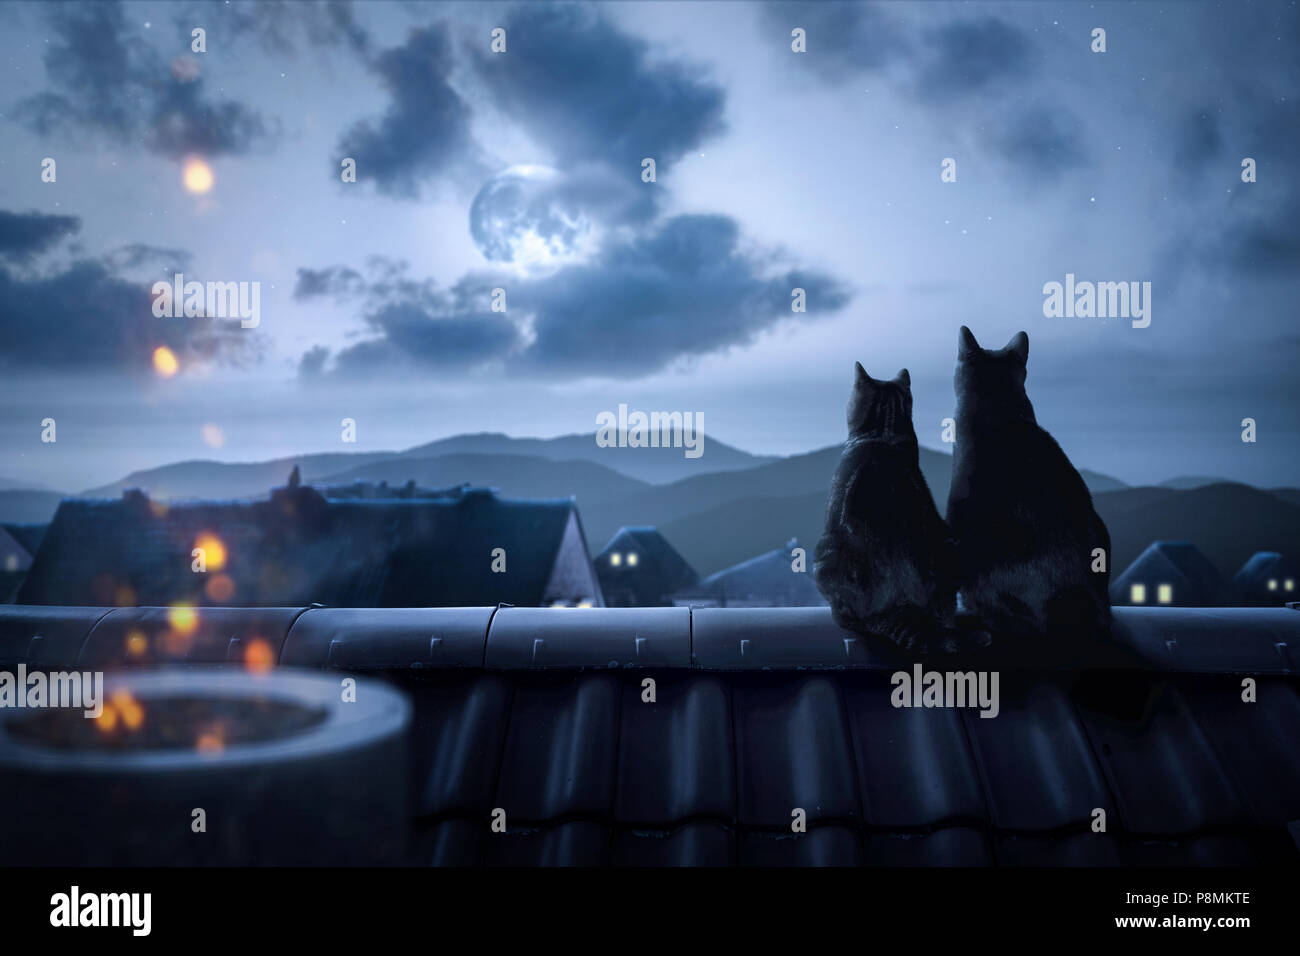 Cats on a rooftop watching the full moon - Stock Image